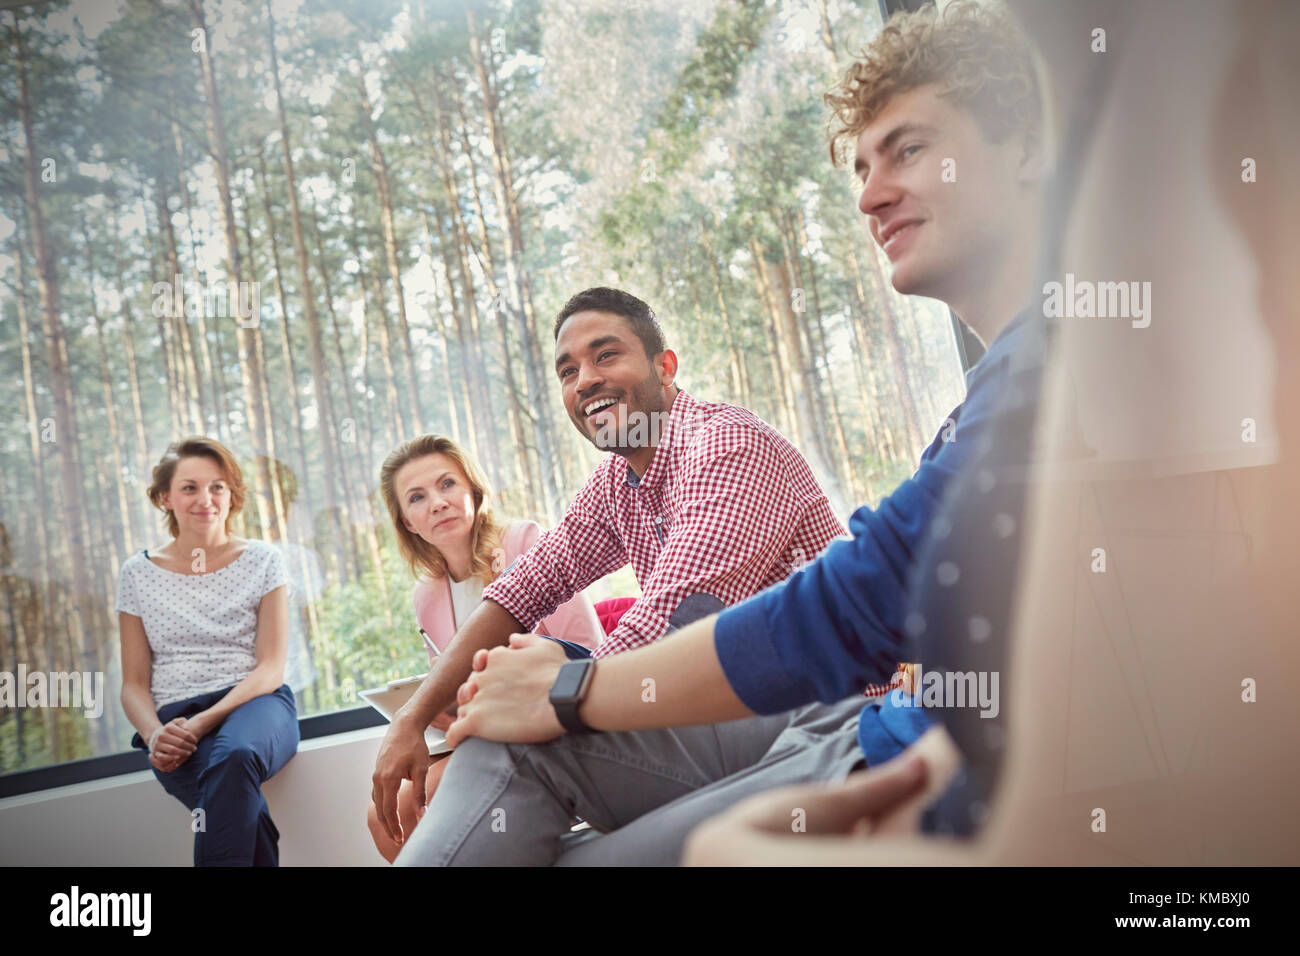 Smiling people listening in group therapy session - Stock Image